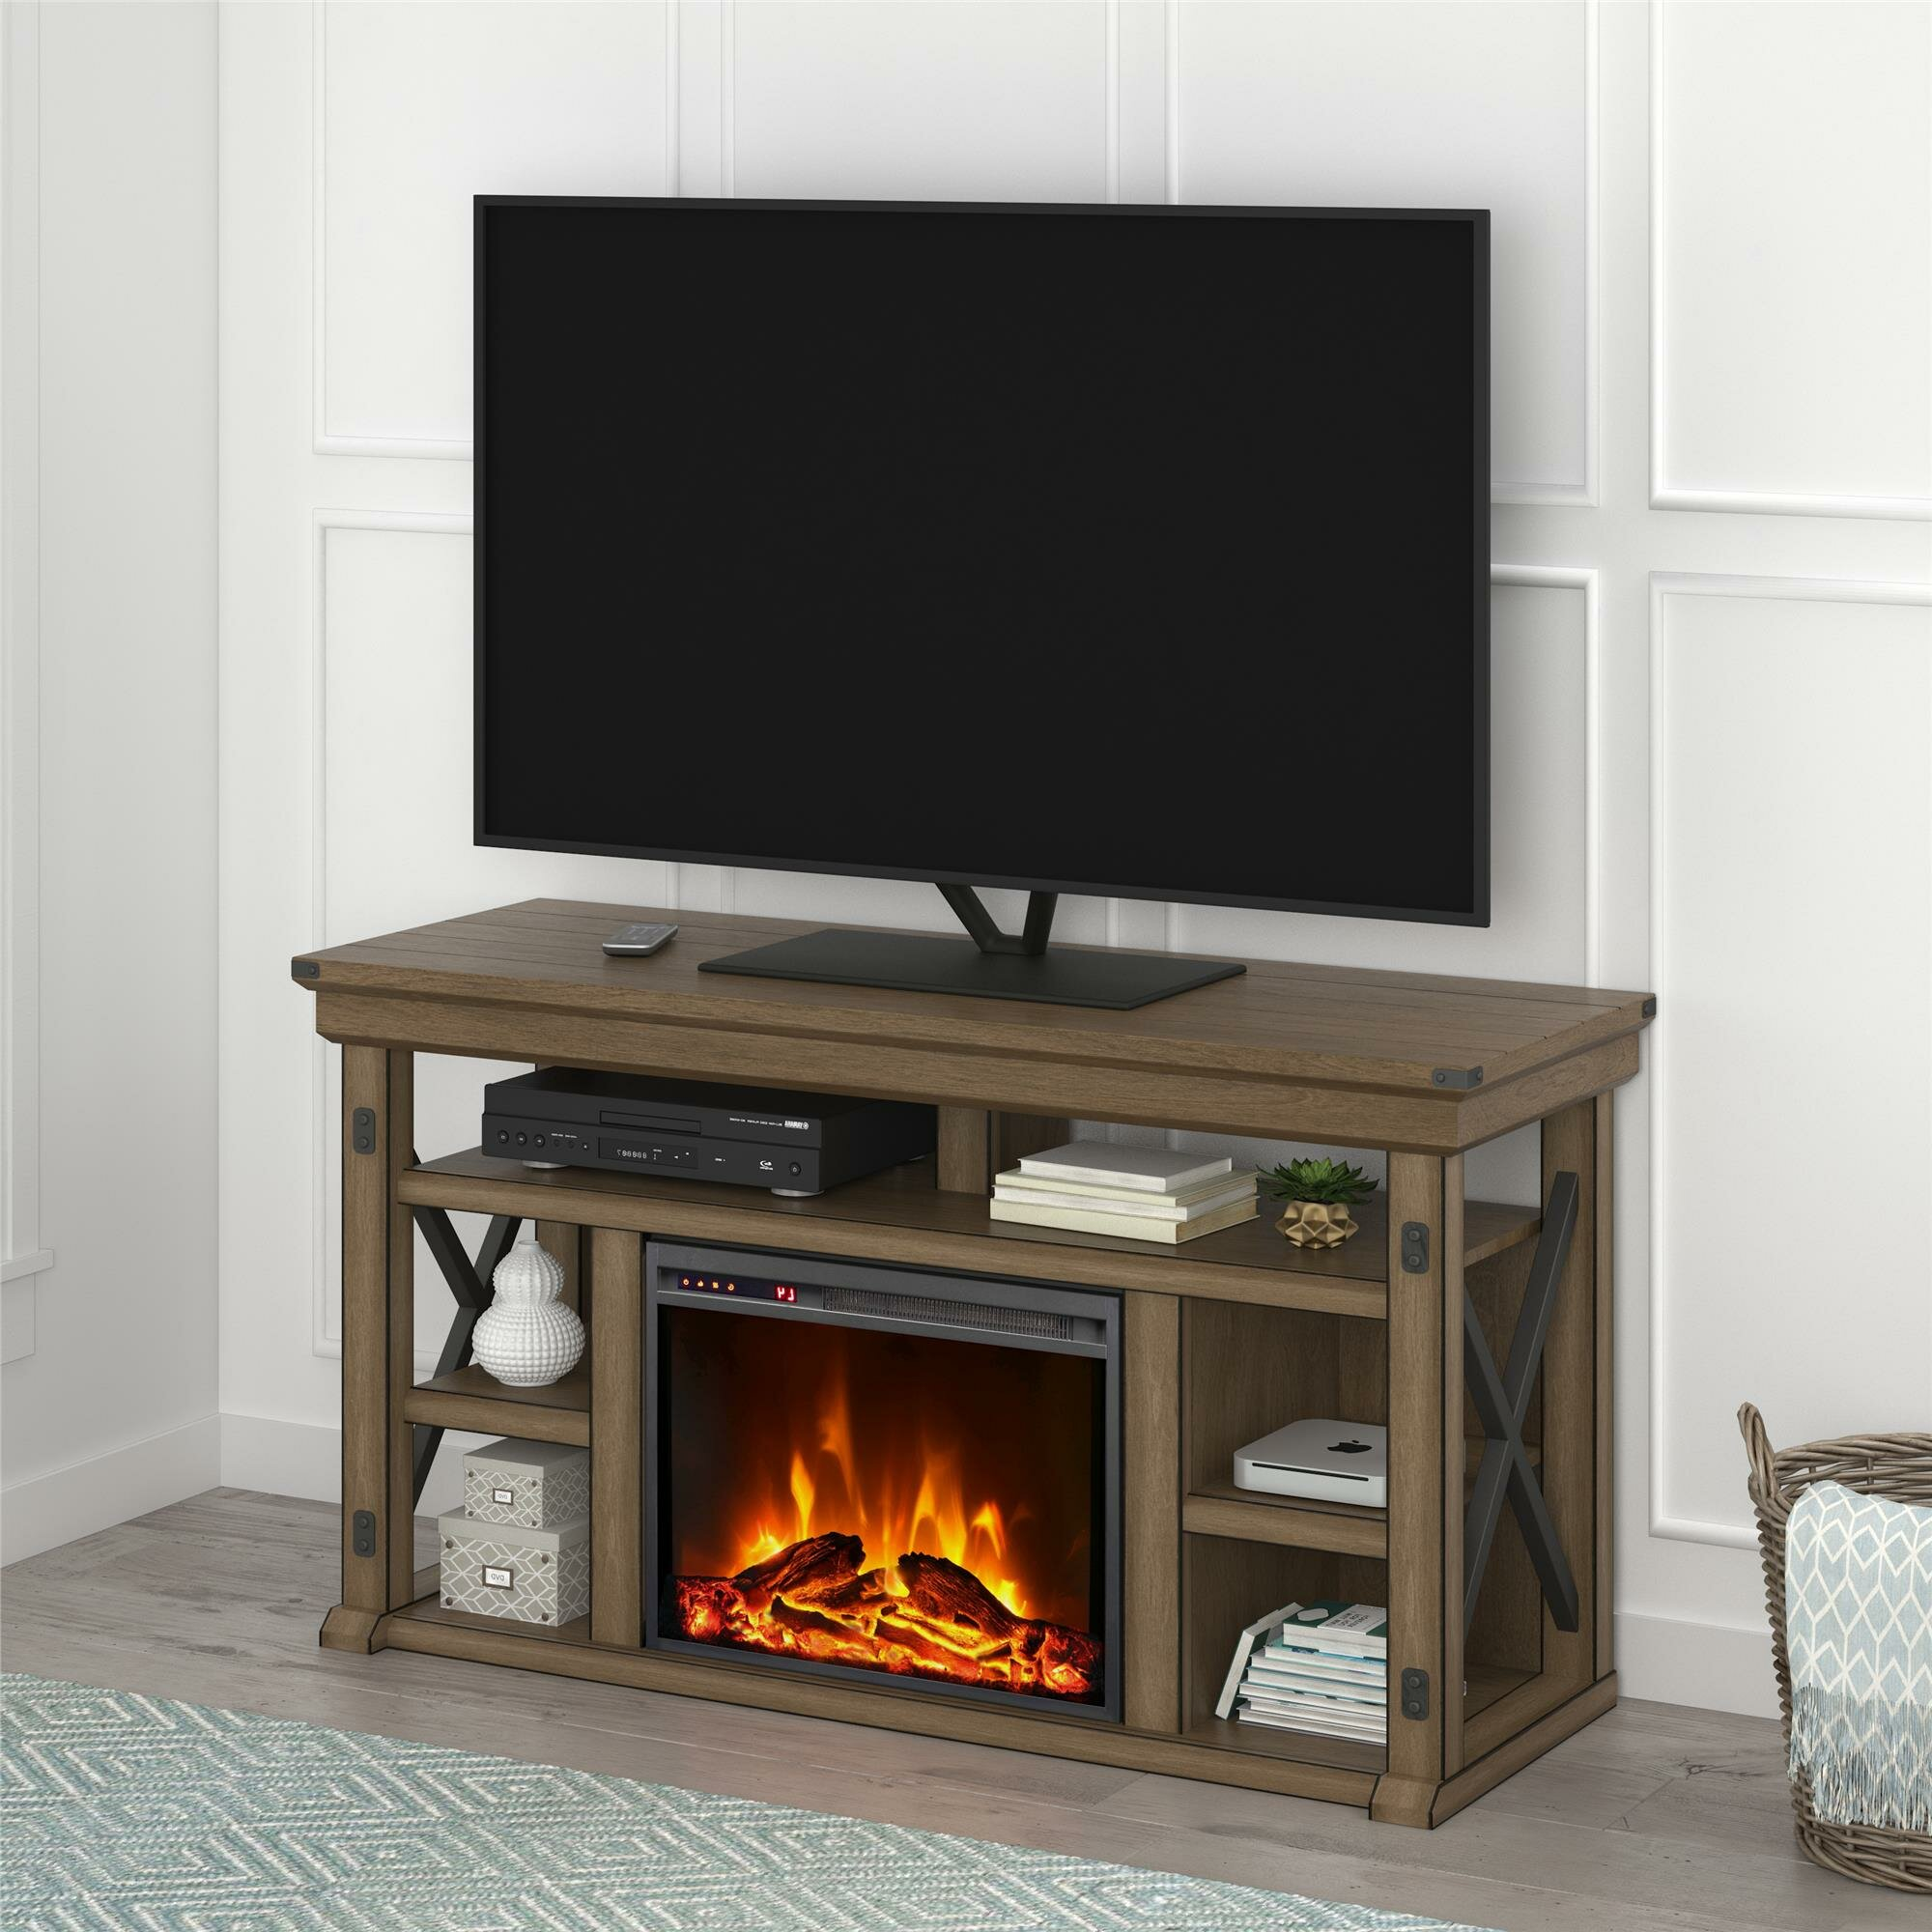 Gladstone Tv Stand For Tvs Up To 60 Inches With Fireplace Included Reviews Joss Main